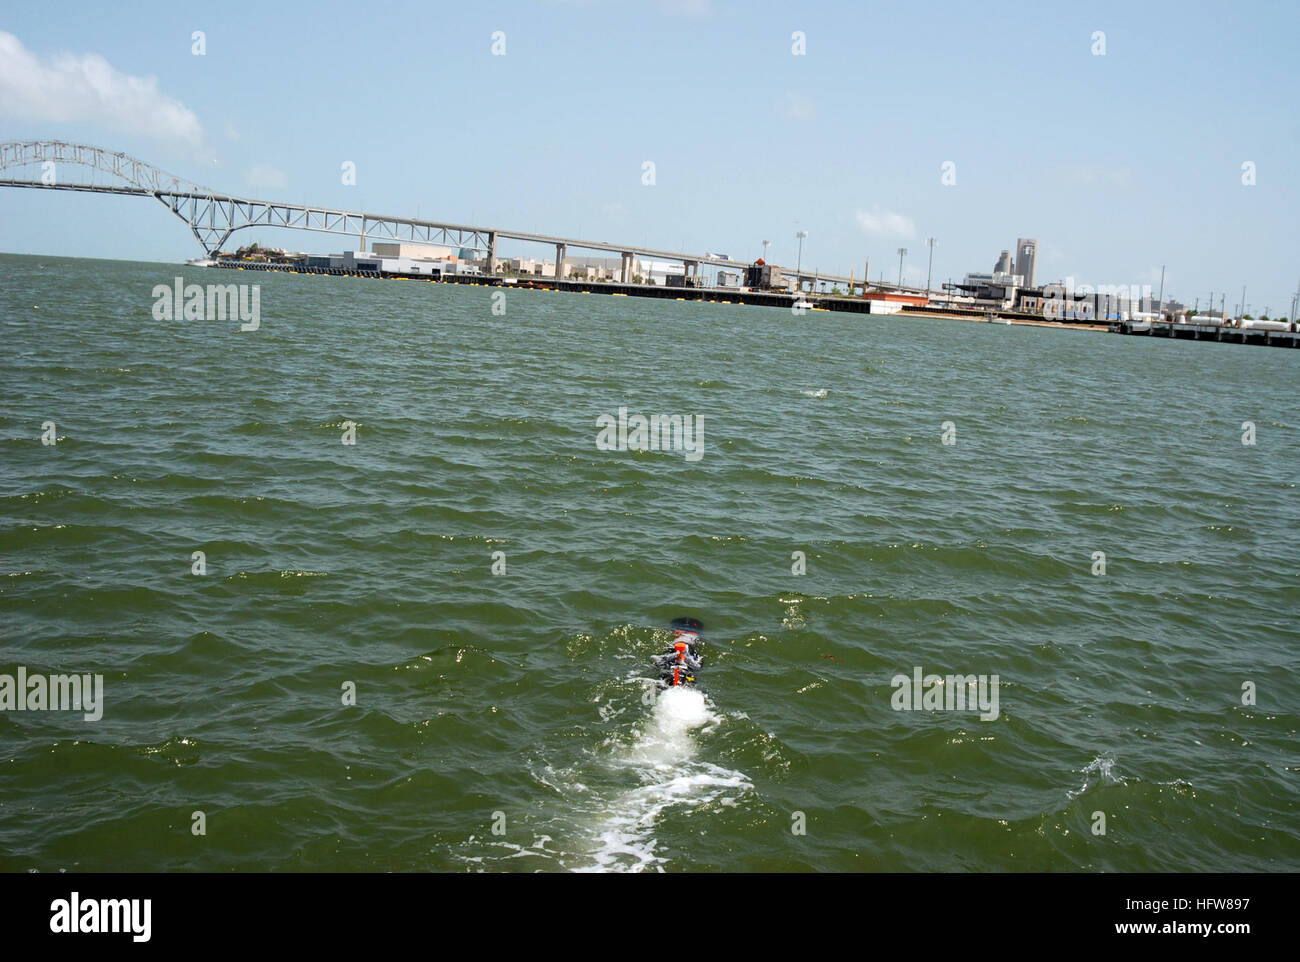 090512-N-1269-024  CORPUS CHRISTI, Texas (May 11, 2009) An Unmanned Underwater Vehicle is launched in the Corpus - Stock Image